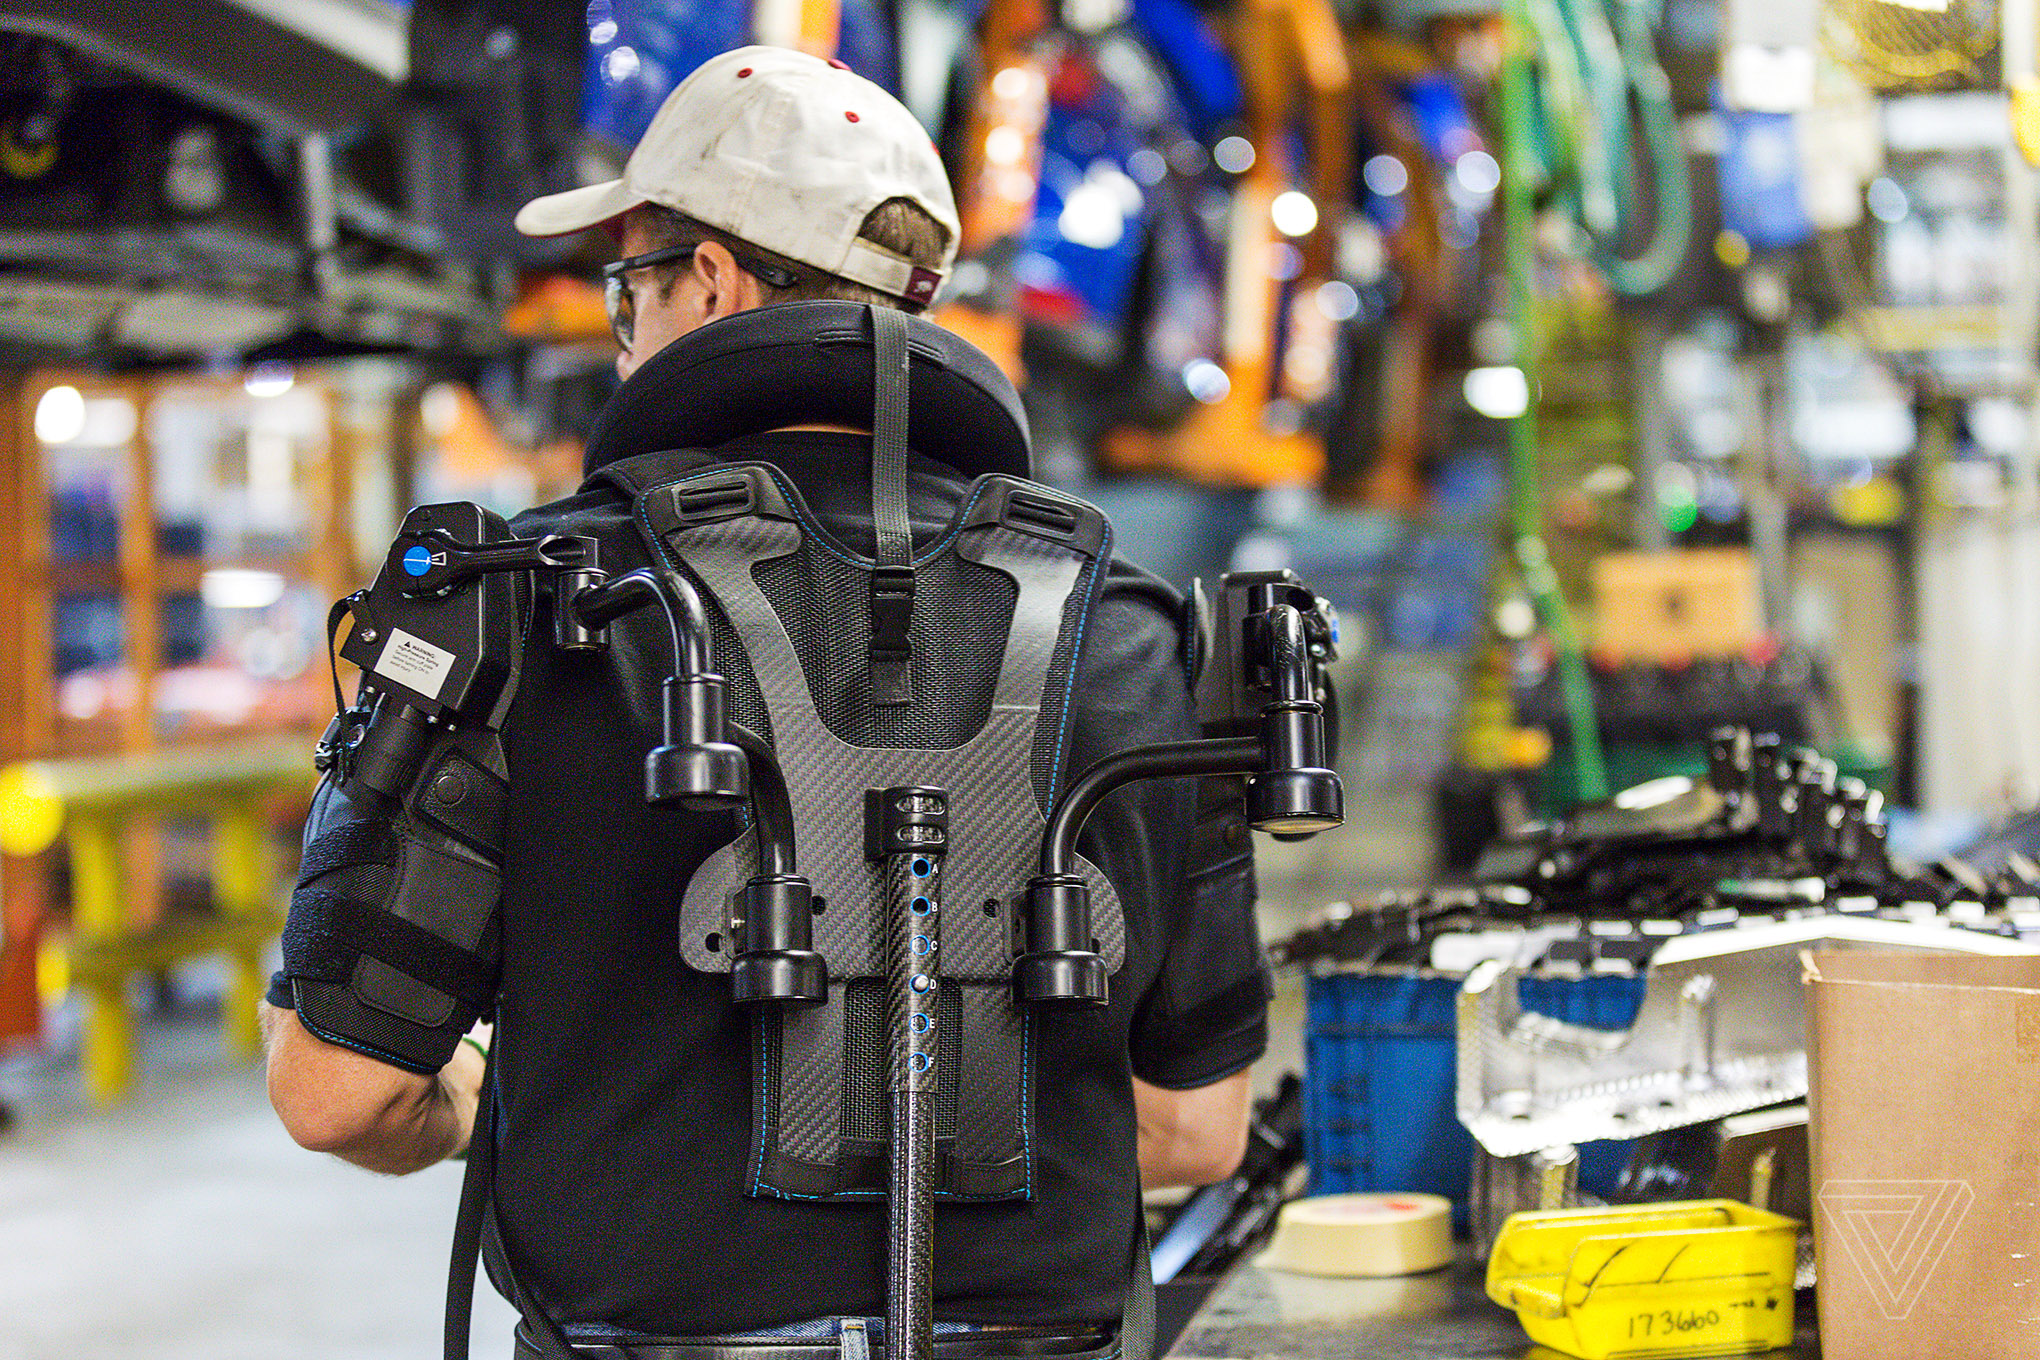 Are exoskeletons the future of physical labor?